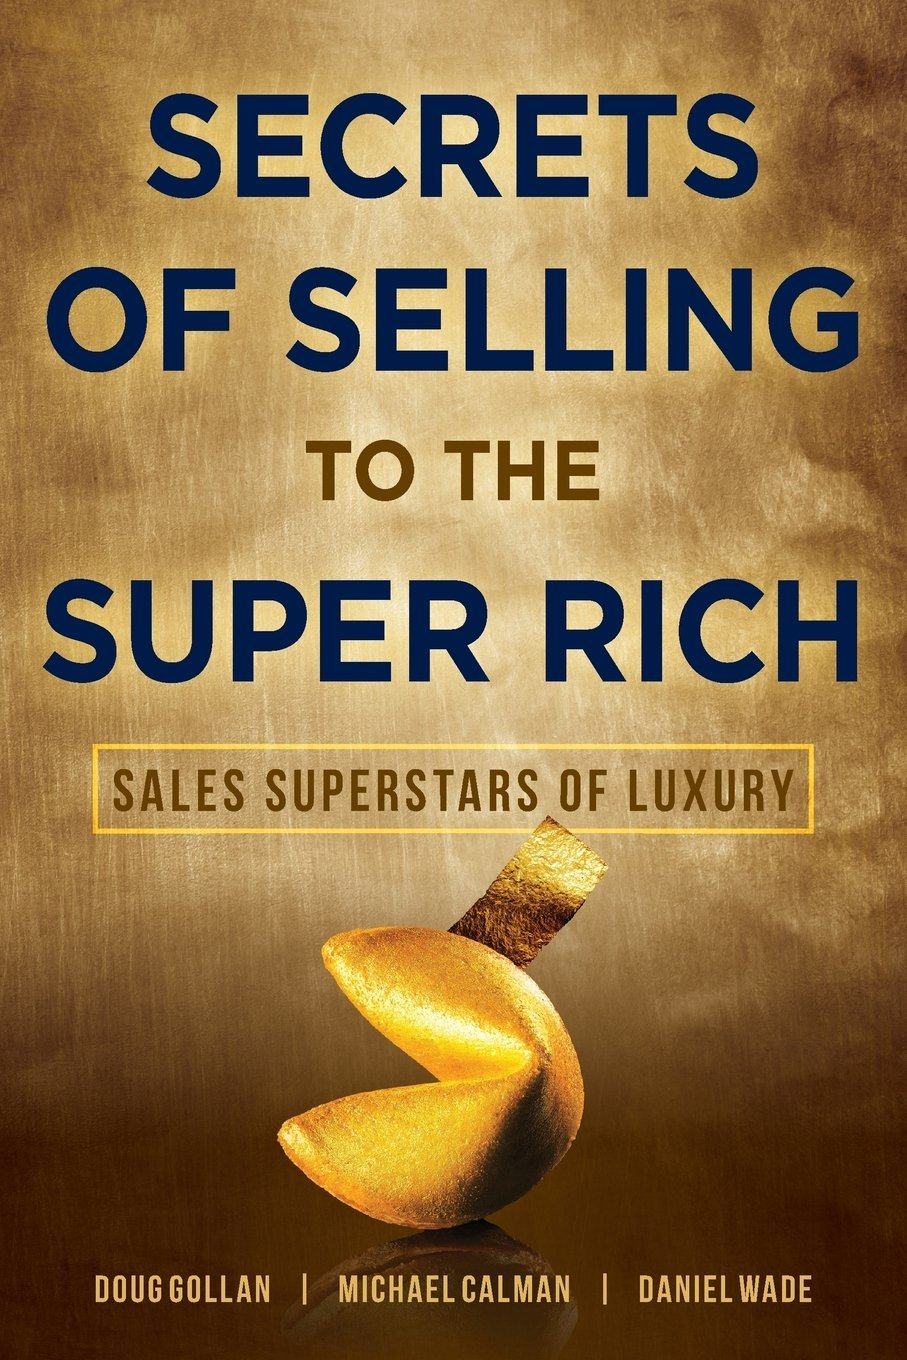 secrets-of-selling-to-the-super-rich-book